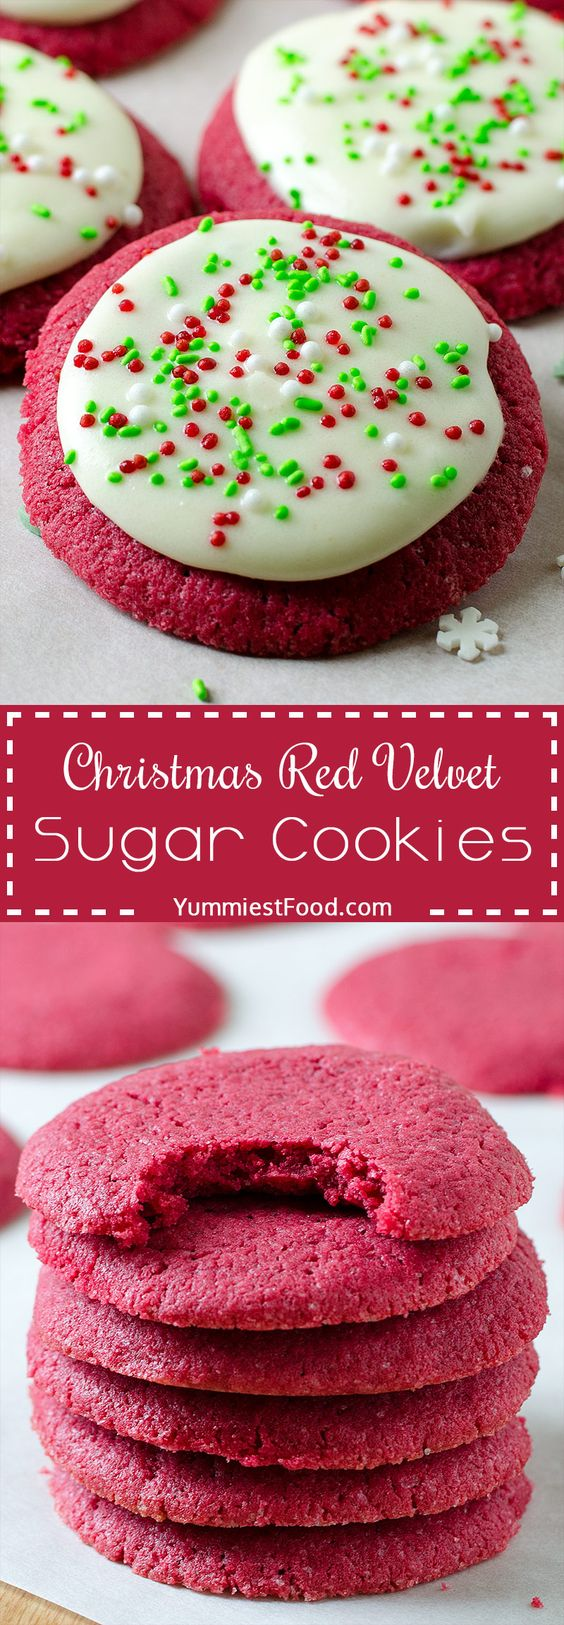 CHRISTMAS RED VELVET SUGAR COOKIES – Perfect and easy cookie recipe for Christmas or any festive time of year! The delicious flavor of red velvet, buttery soft and topped with best cream cheese frosting! #christmas #christmasrecipes #desserts #dessert #dessertrecipes #dessertfoodrecipes #easyrecipes #cookies #easycookies #christmascookies #sugarcookies